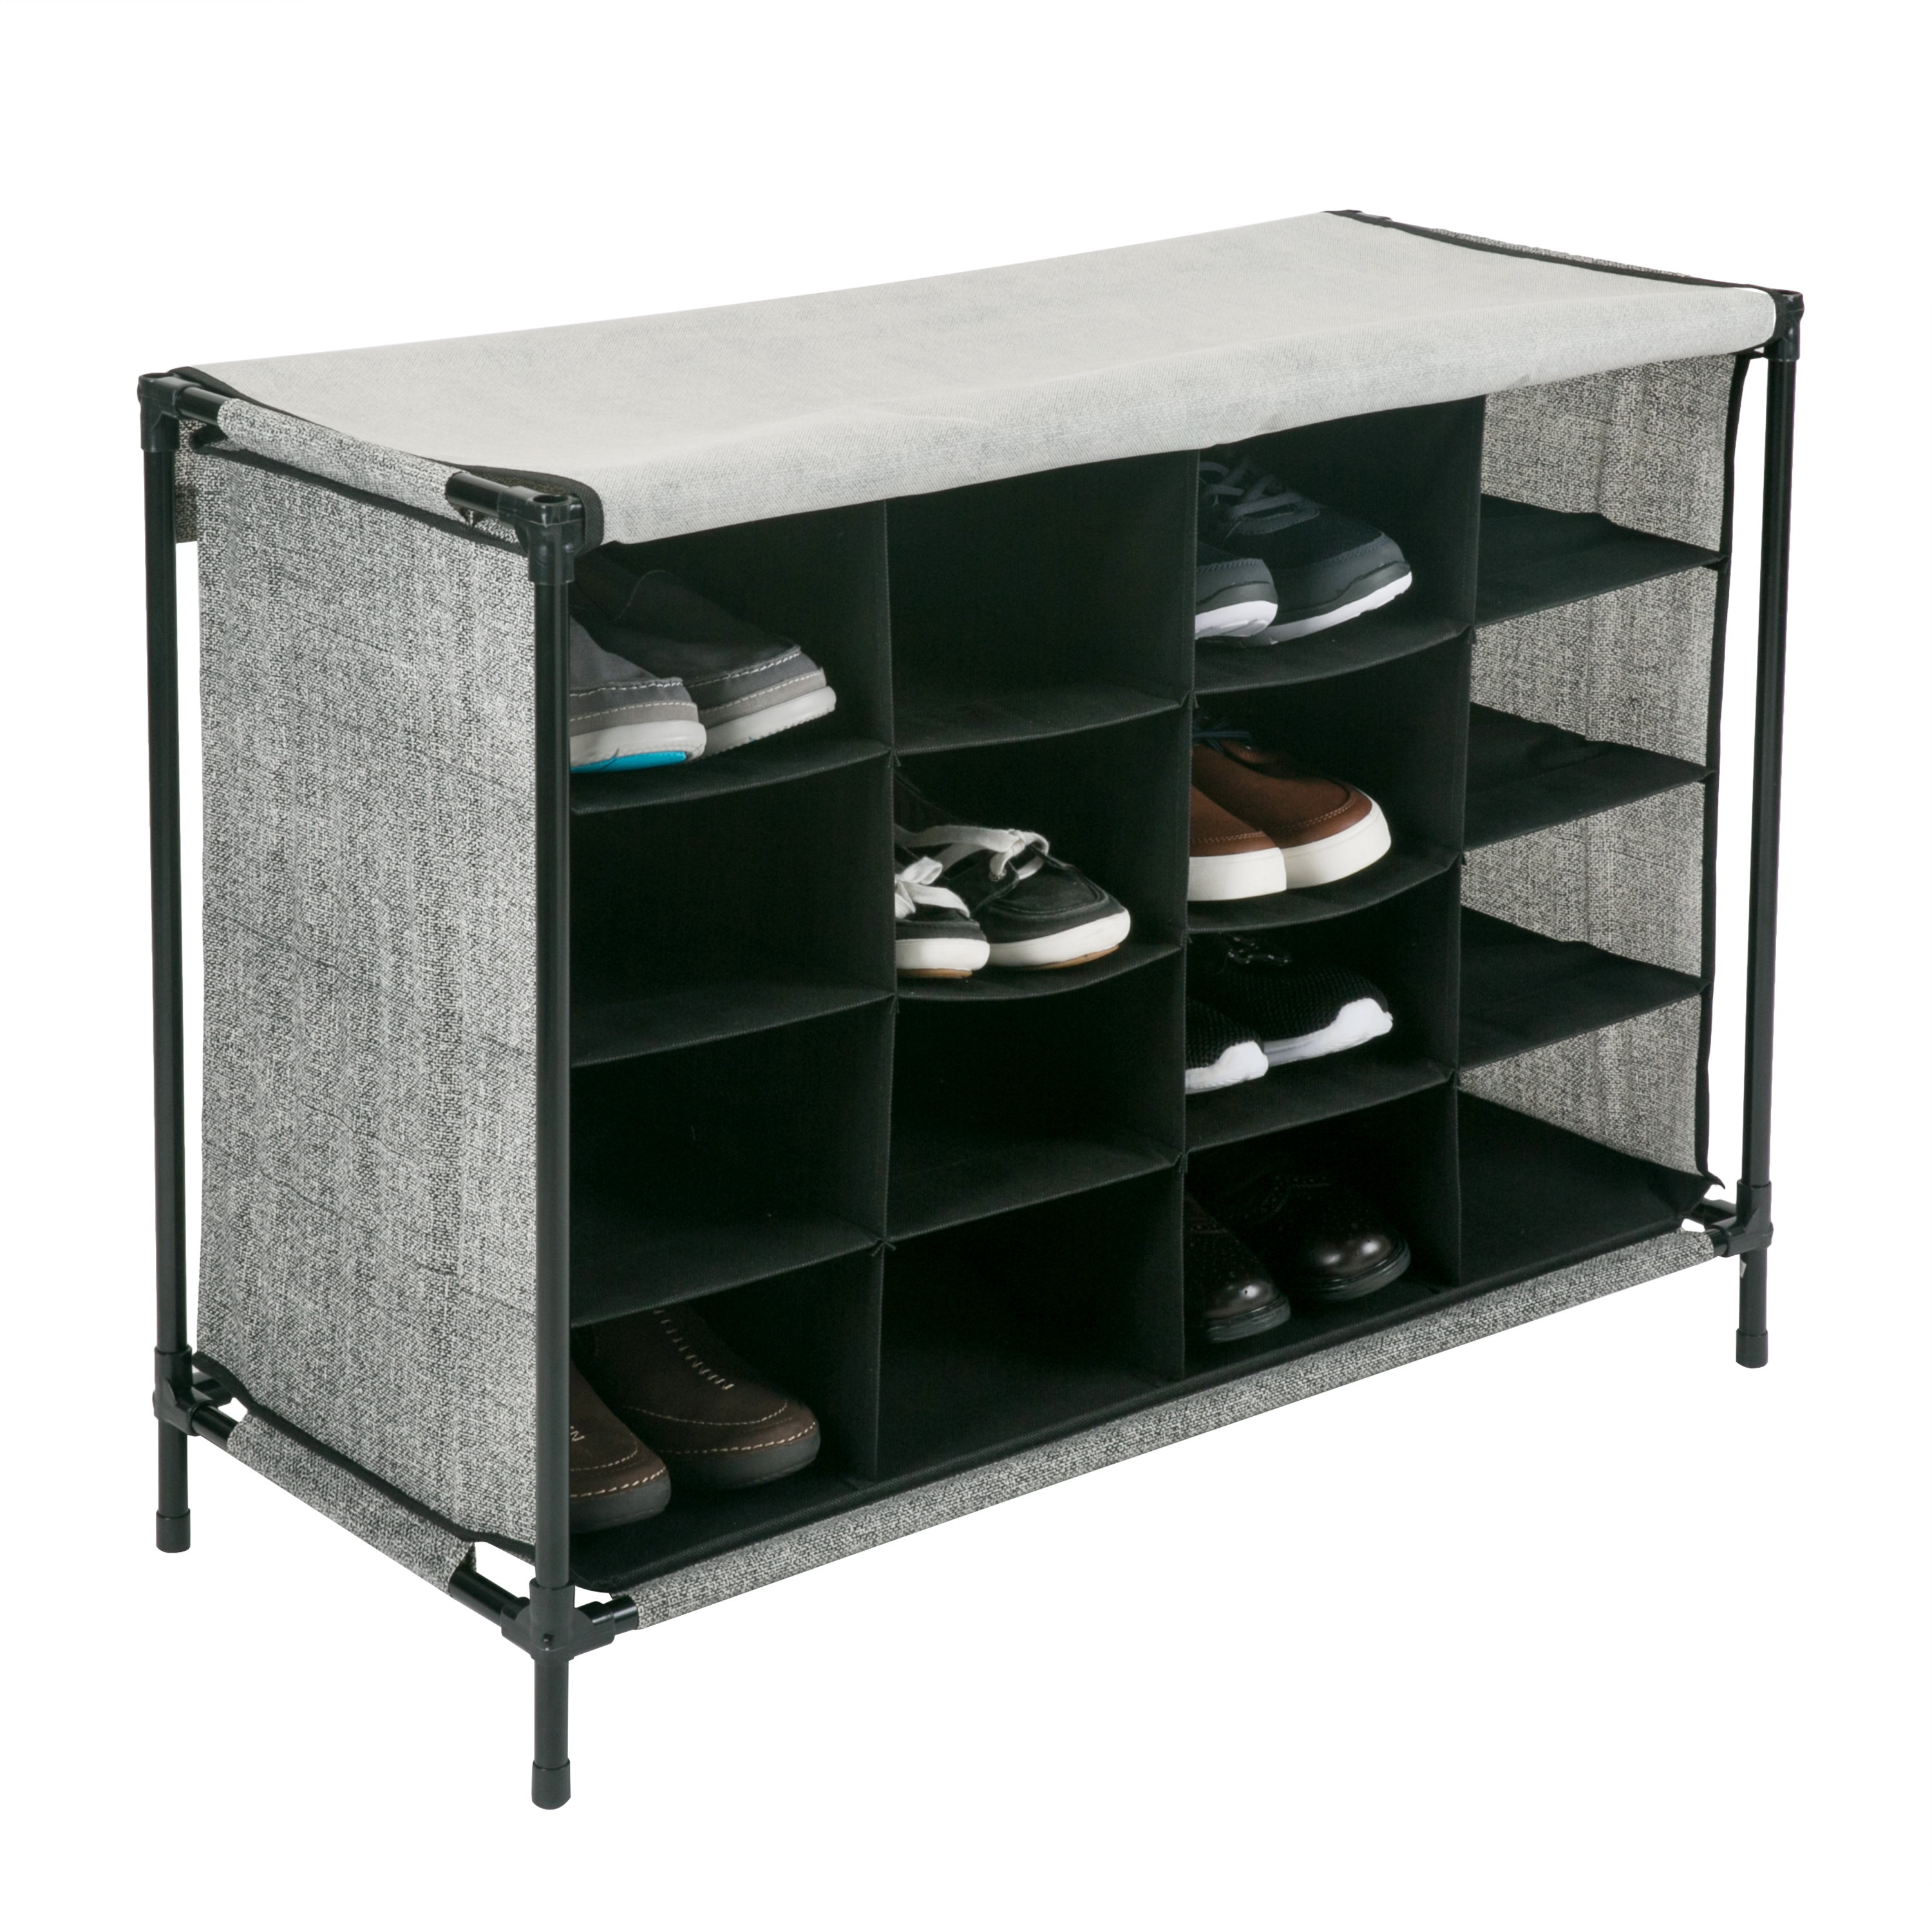 16 Compartment Shoe Cubby Organizer W/Cover - Black